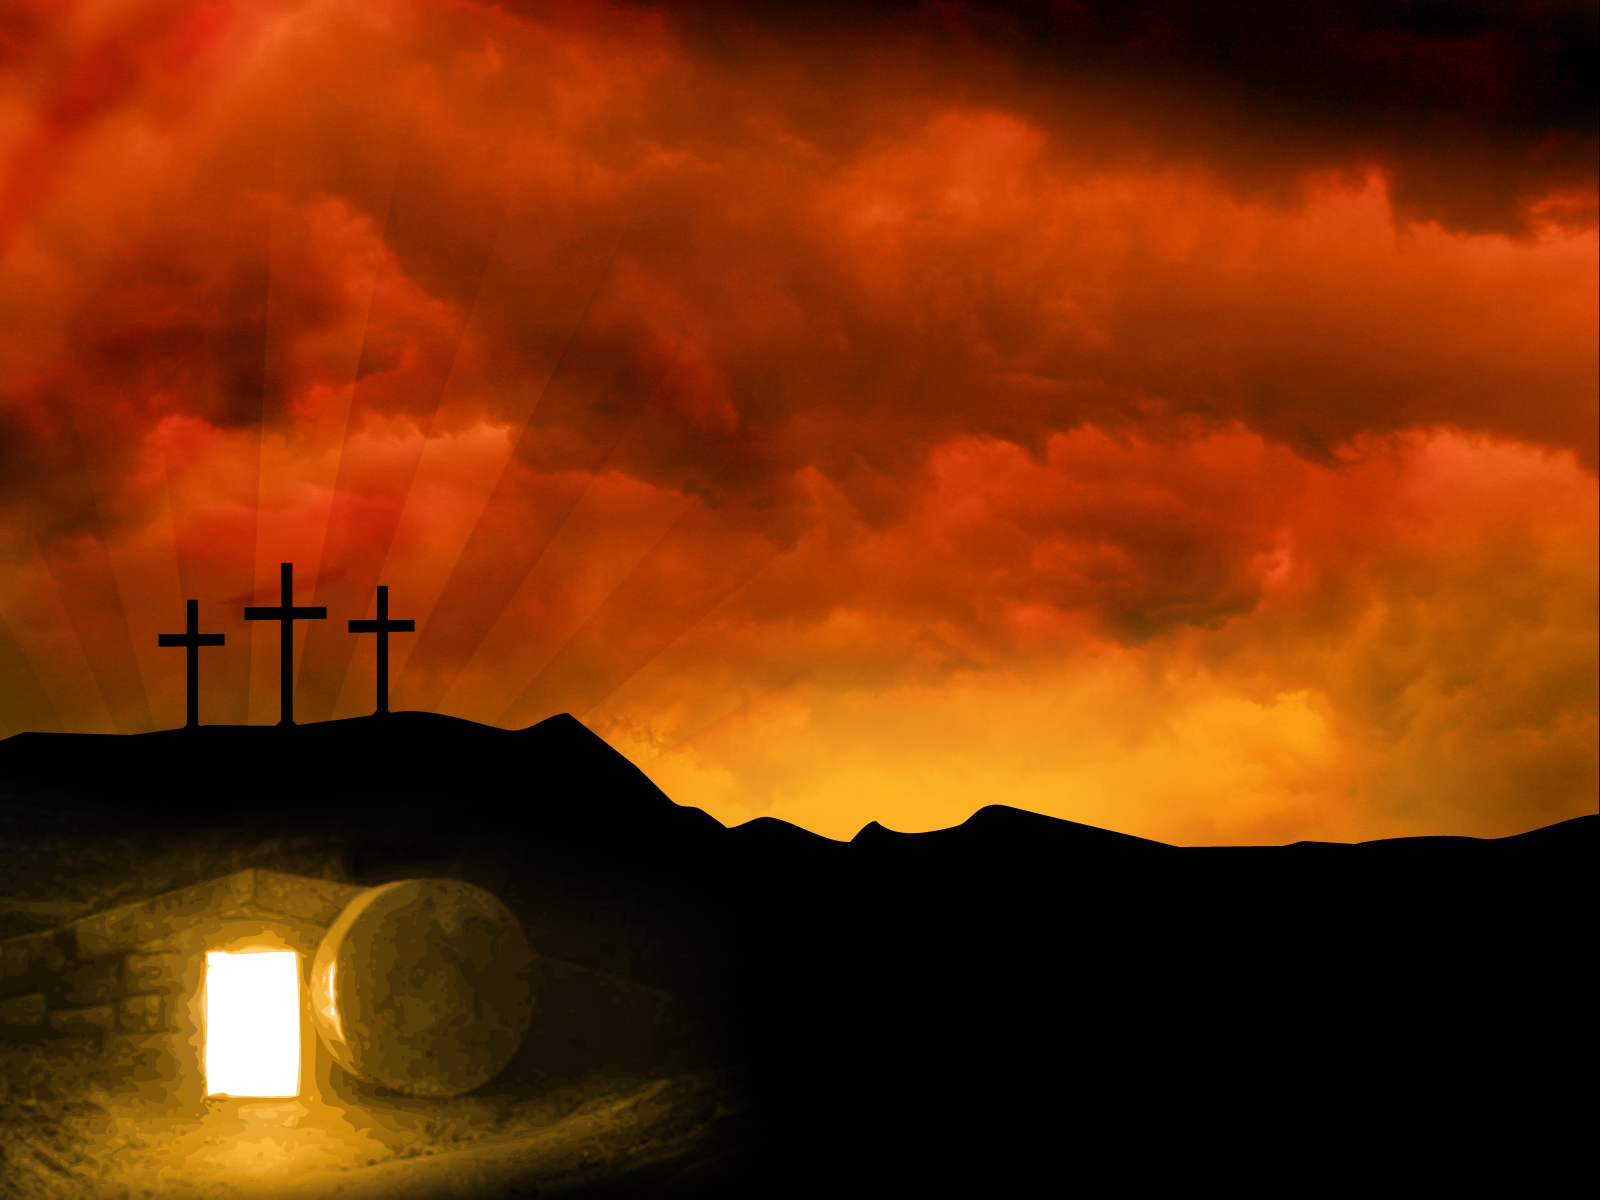 easter resurrection background easter resurrection background easter 1600x1200